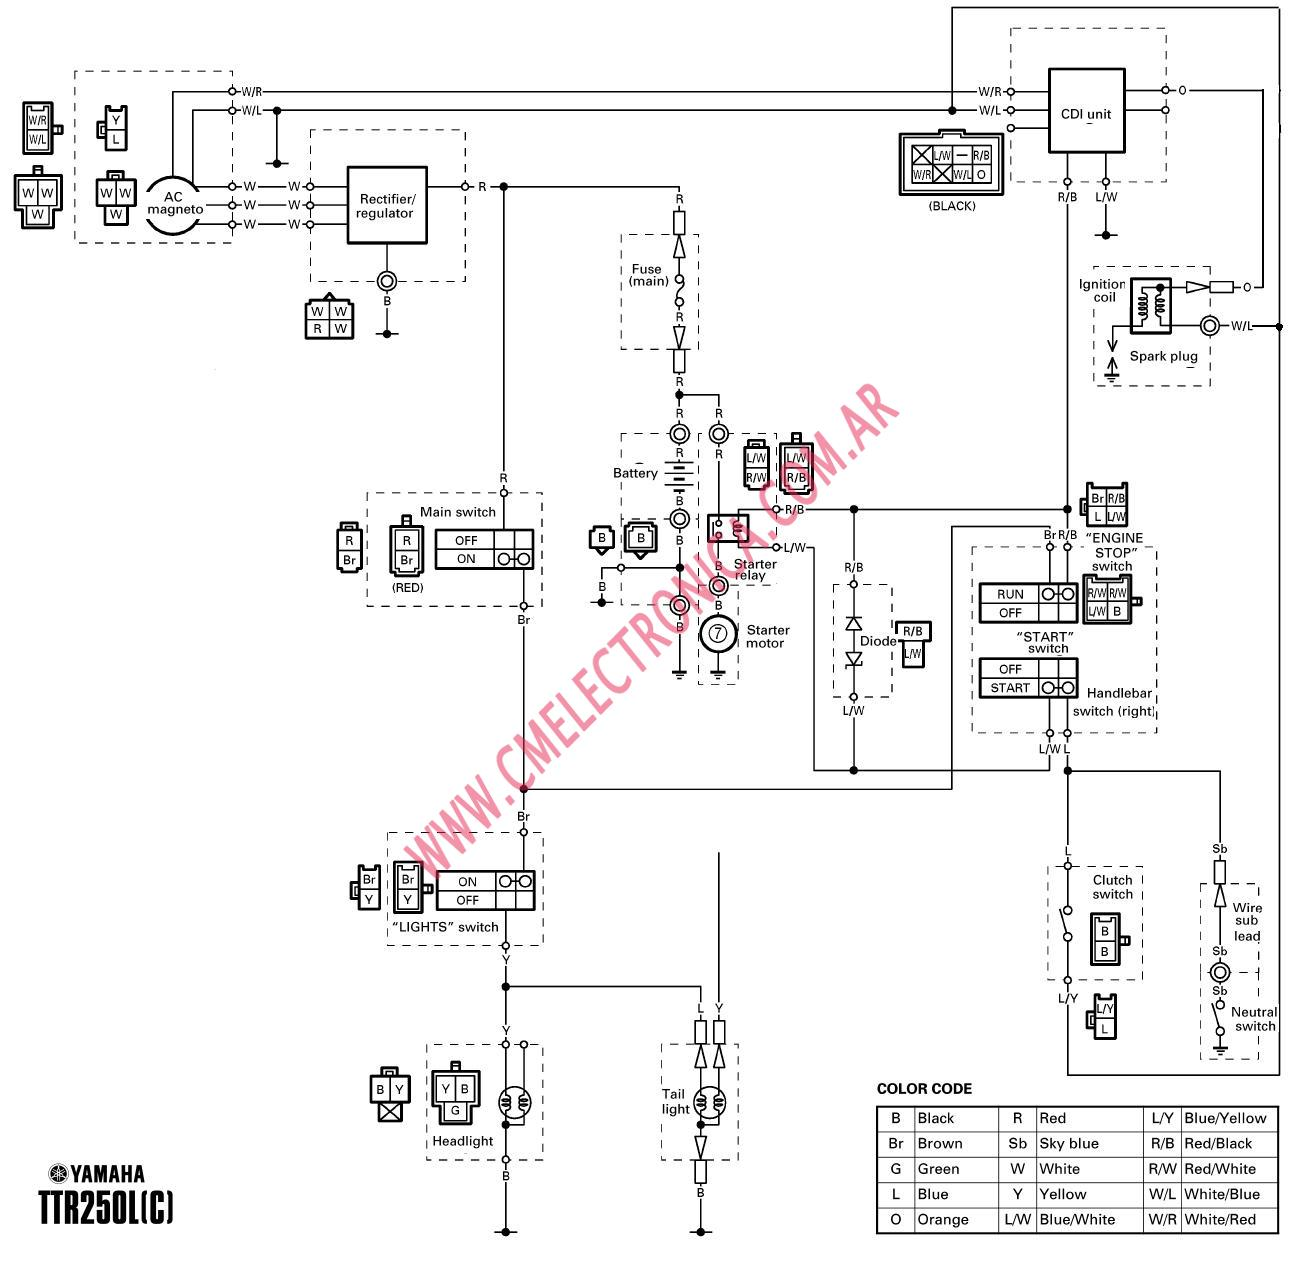 Wiring Diagrams 250 Yamaha on wiring diagram yamaha xt225